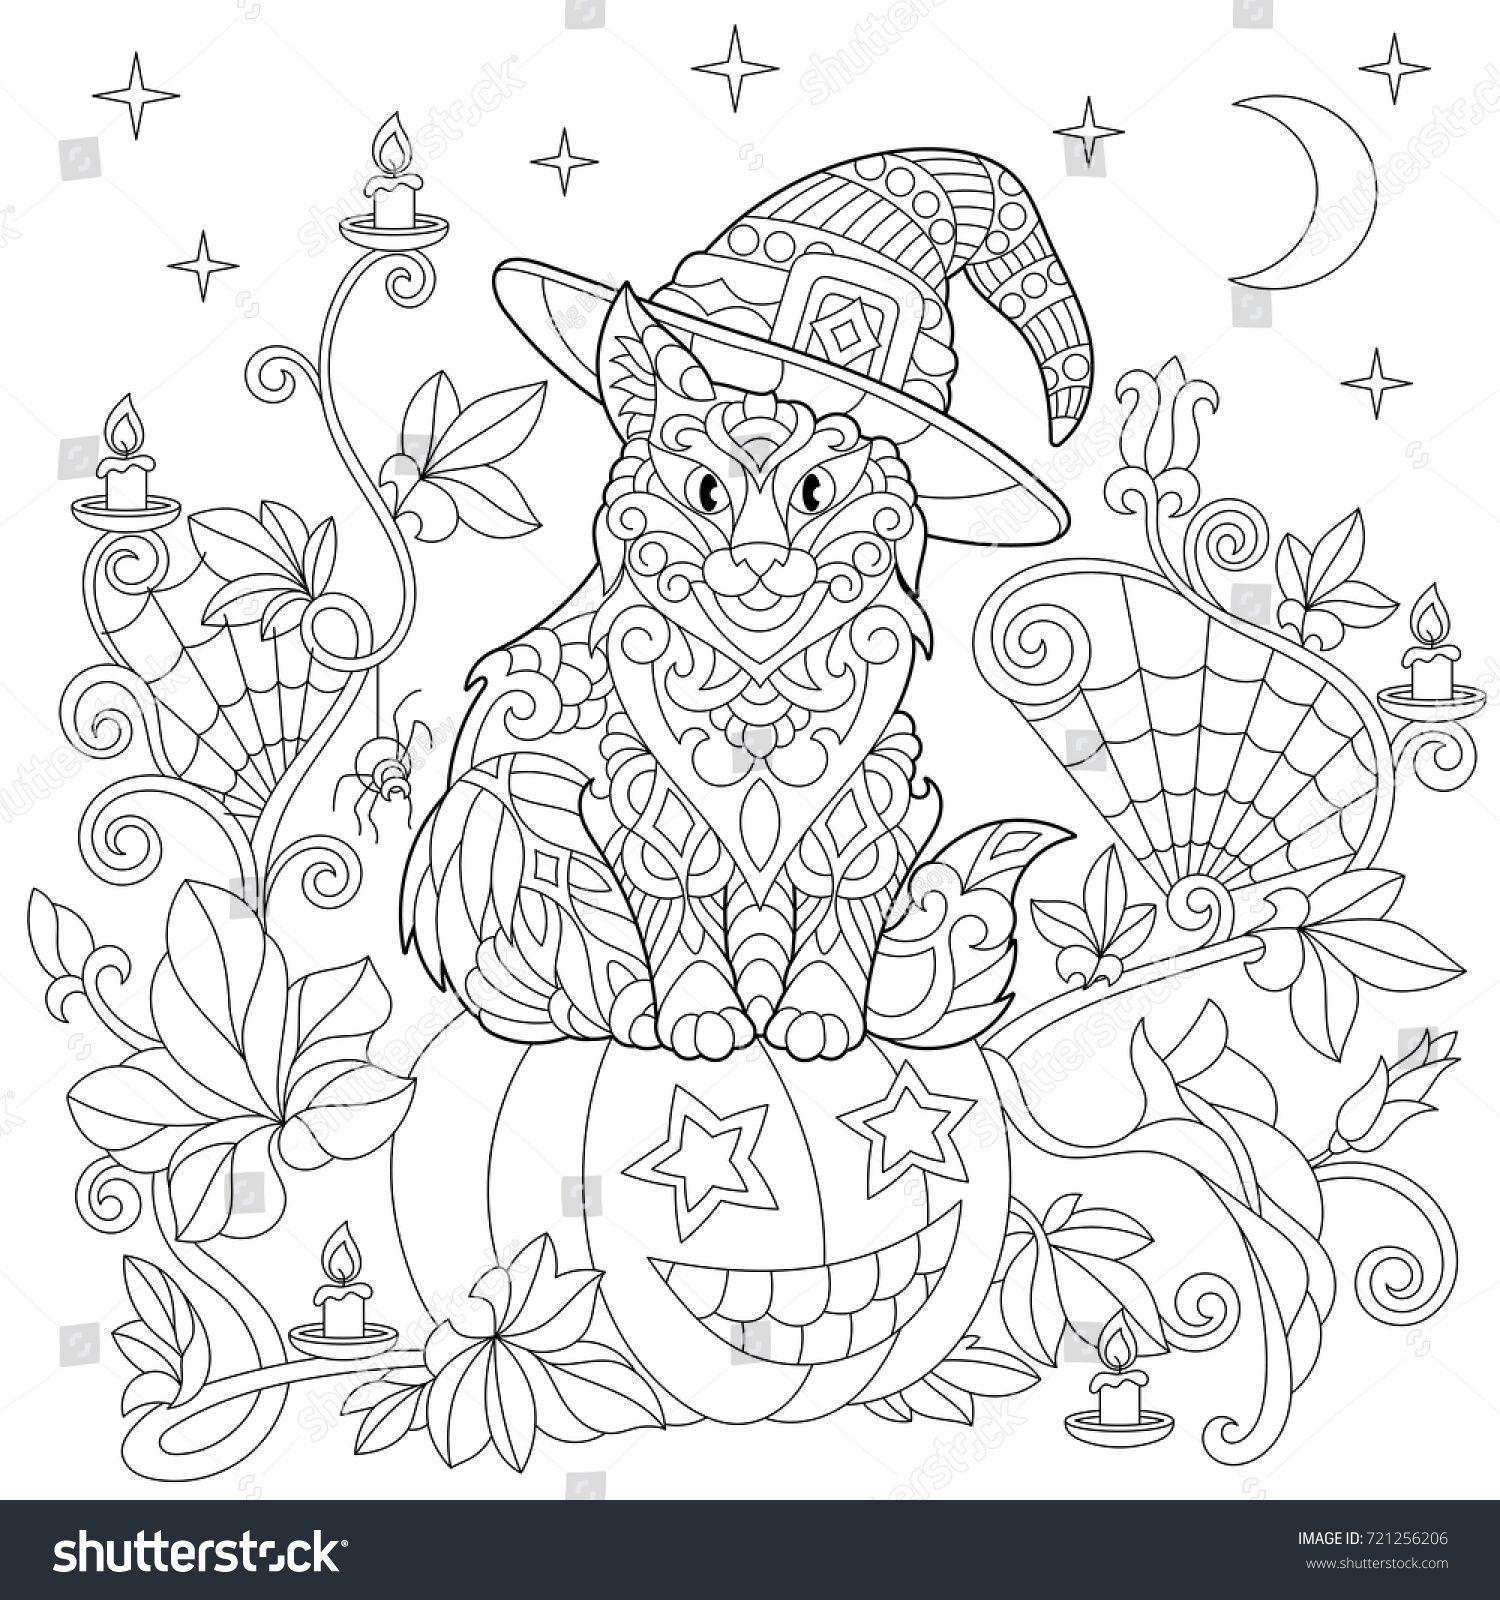 Halloween Coloring Page Cat In A Hat Halloween Pumpkin Spider